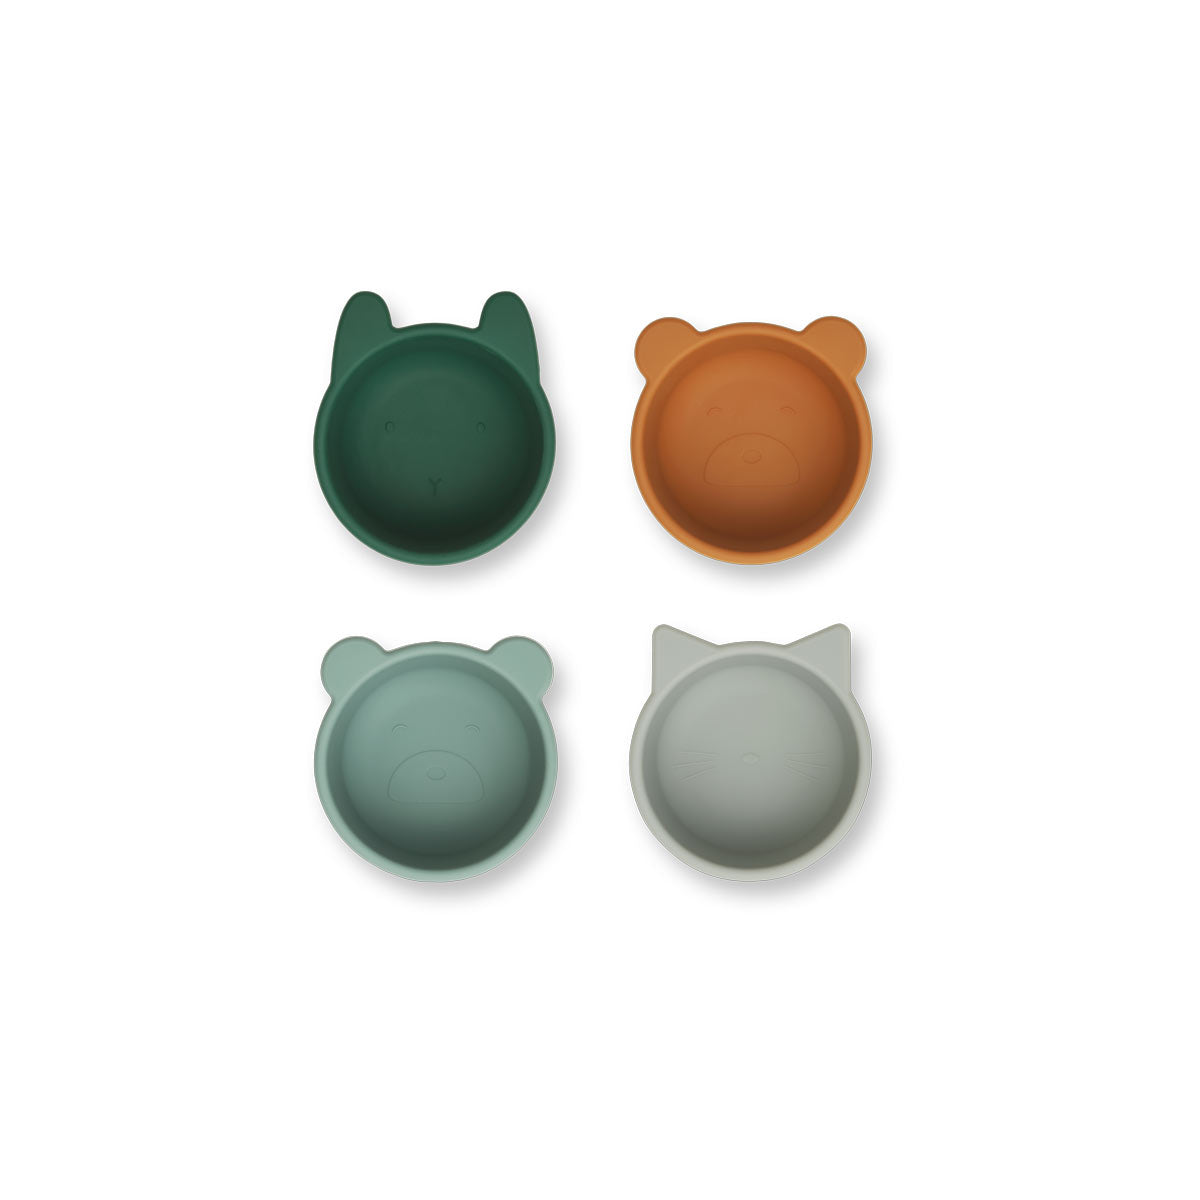 Liewood Malene Silicone Bowl 4 Pack - Green multi mix - Tableware